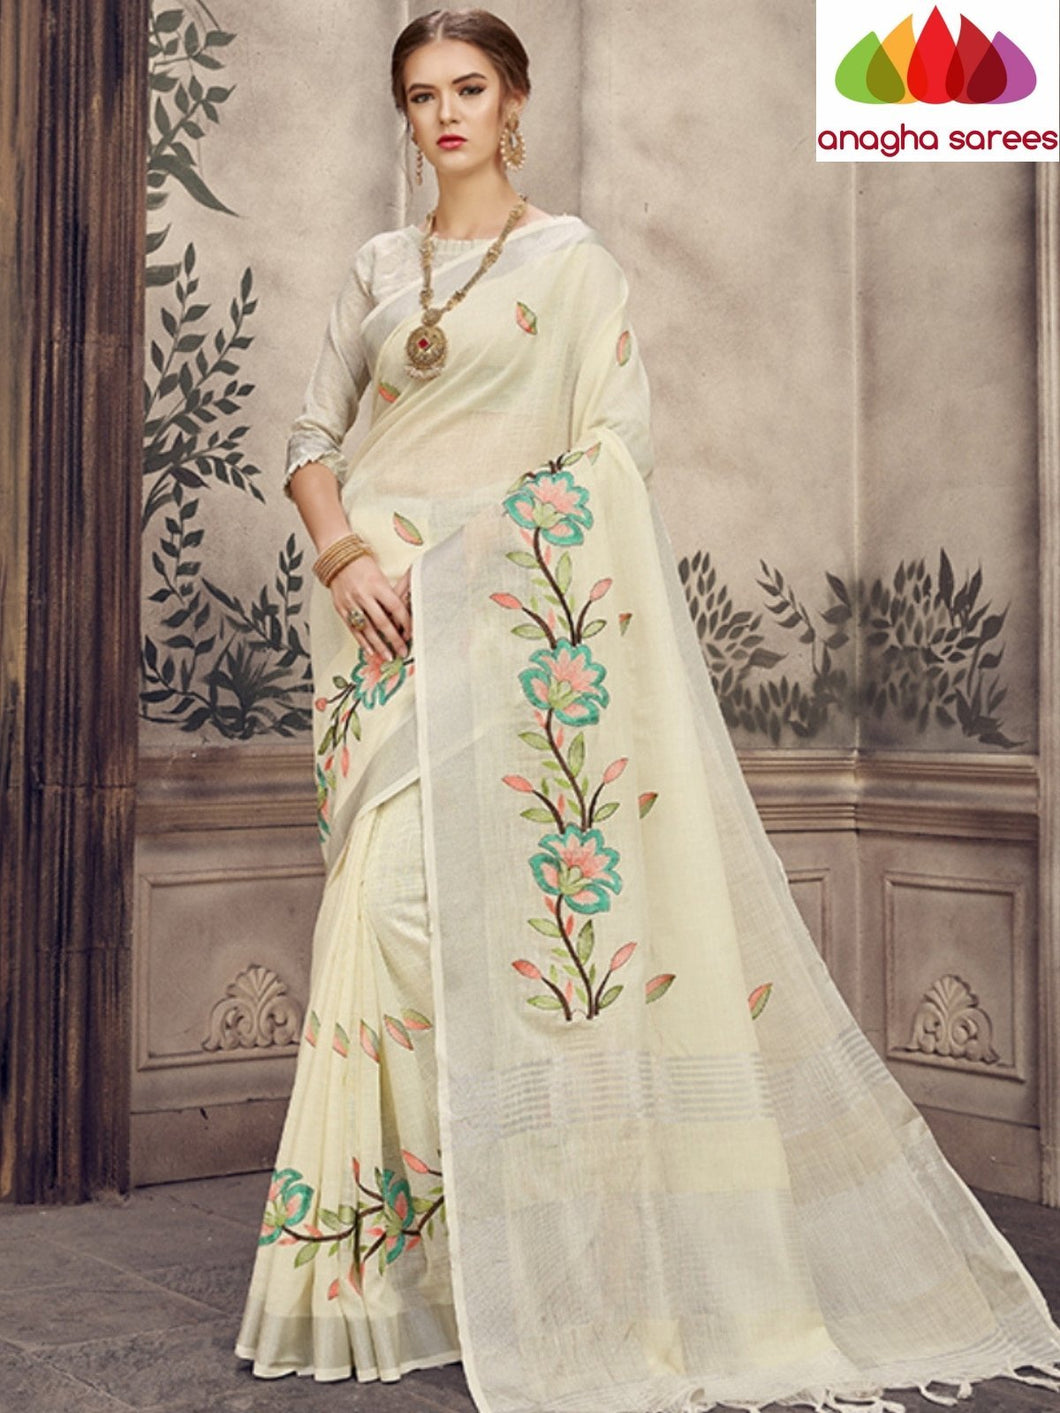 Anagha Sarees Linen Length=6.2metres, width= 45 inches / Lemon yellow Designer Linen Embroidery Saree - Cream : ANA_L41